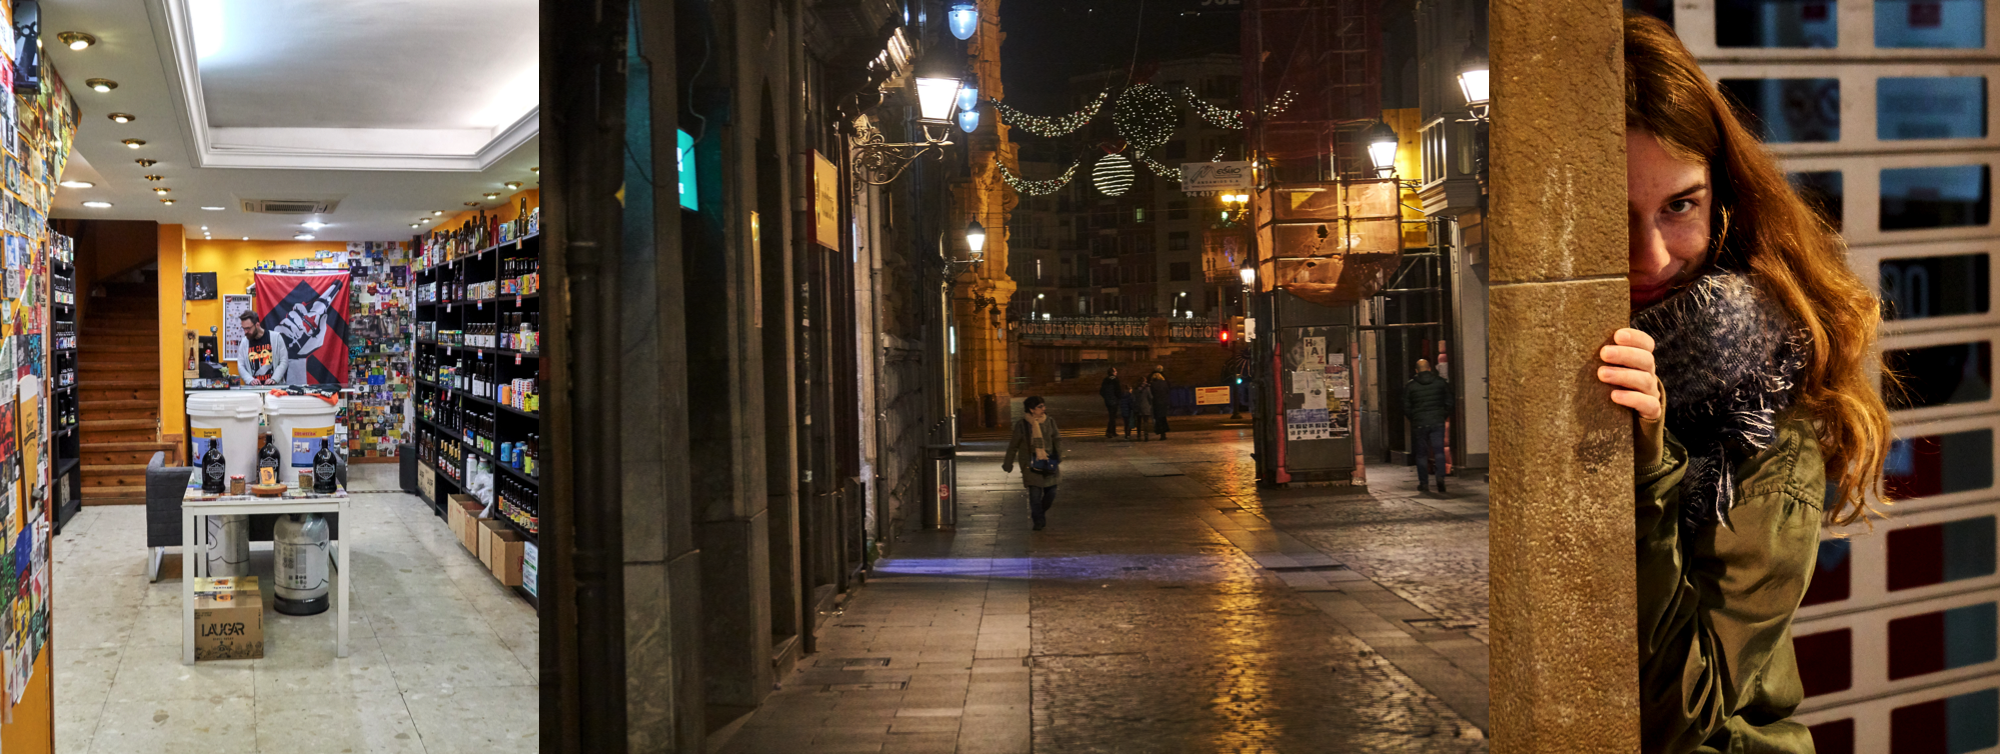 hipster drink shops in the streets of bilbao